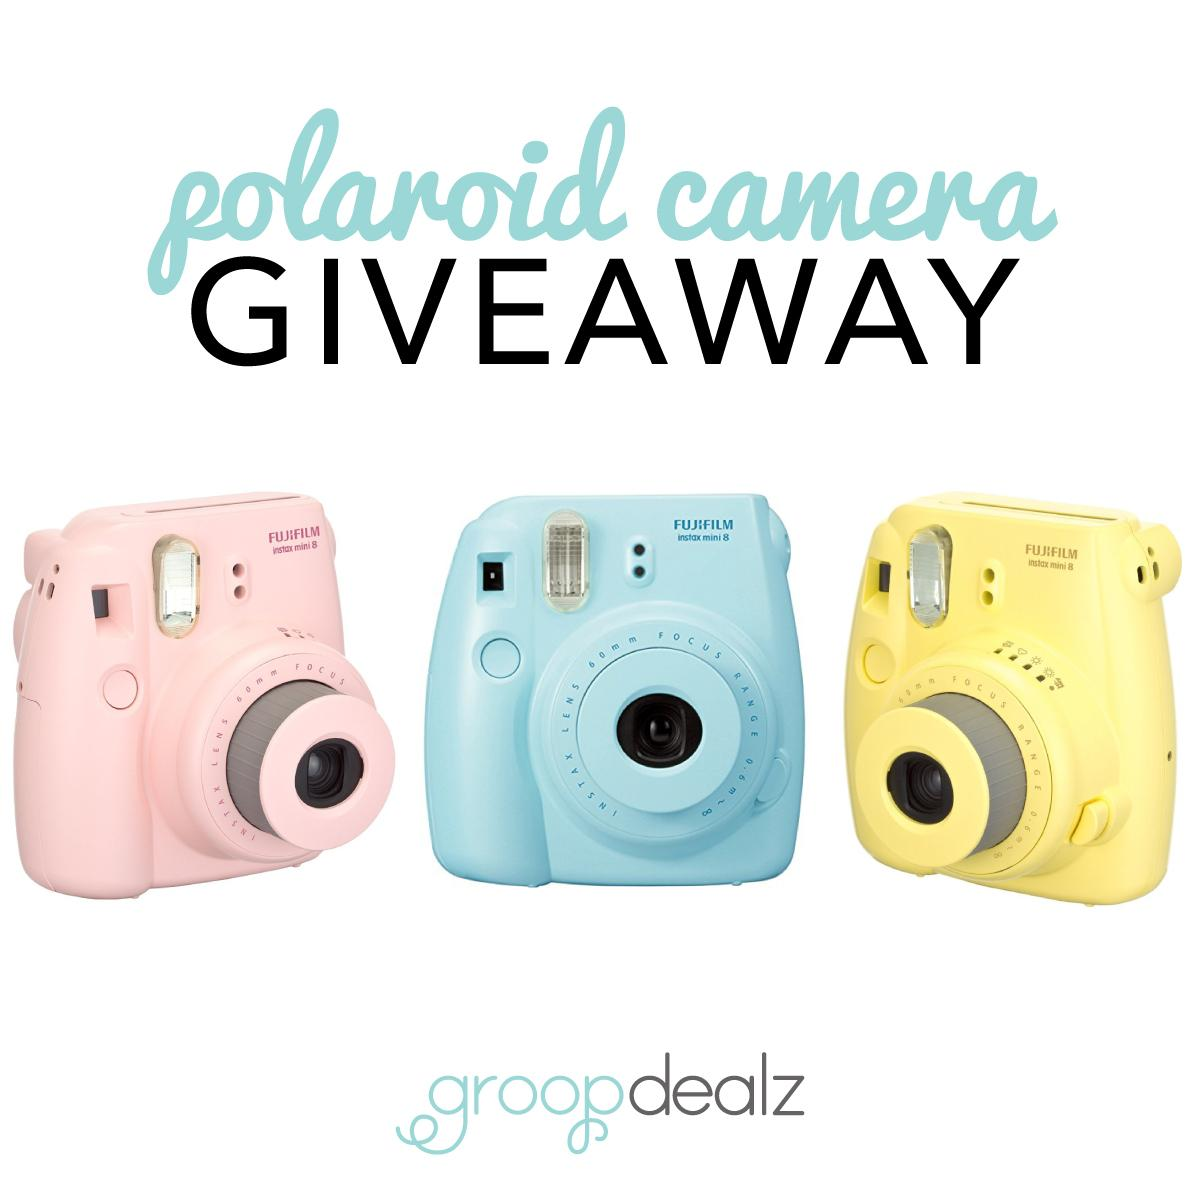 Enter to win @Groopdealz_ Polaroid or Groopdealz credit #giveaway! 4 Winners, Enter Now! http://t.co/iuULcdu1D2 http://t.co/Slm0Flg0bt